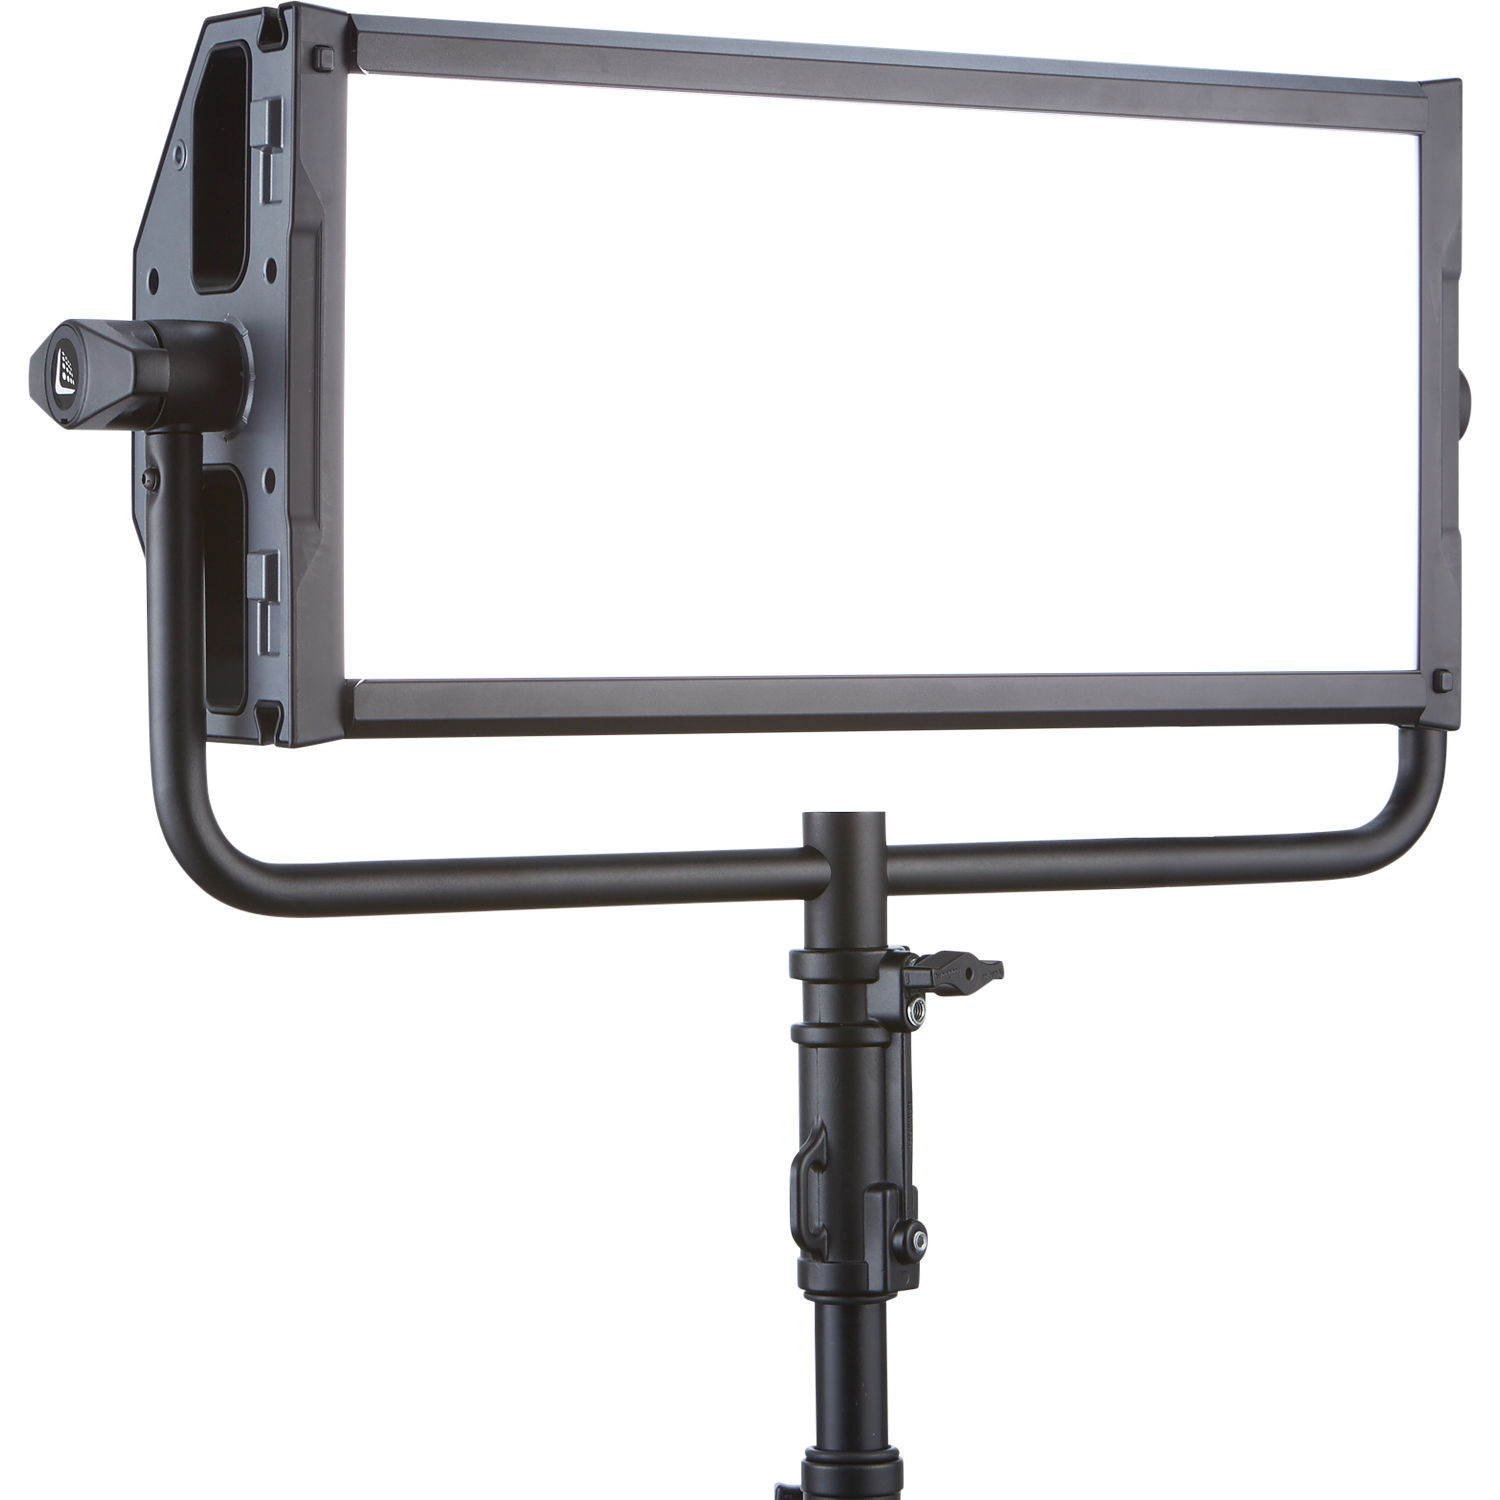 Litepanels Gemini 2x1 Soft Panel - EU